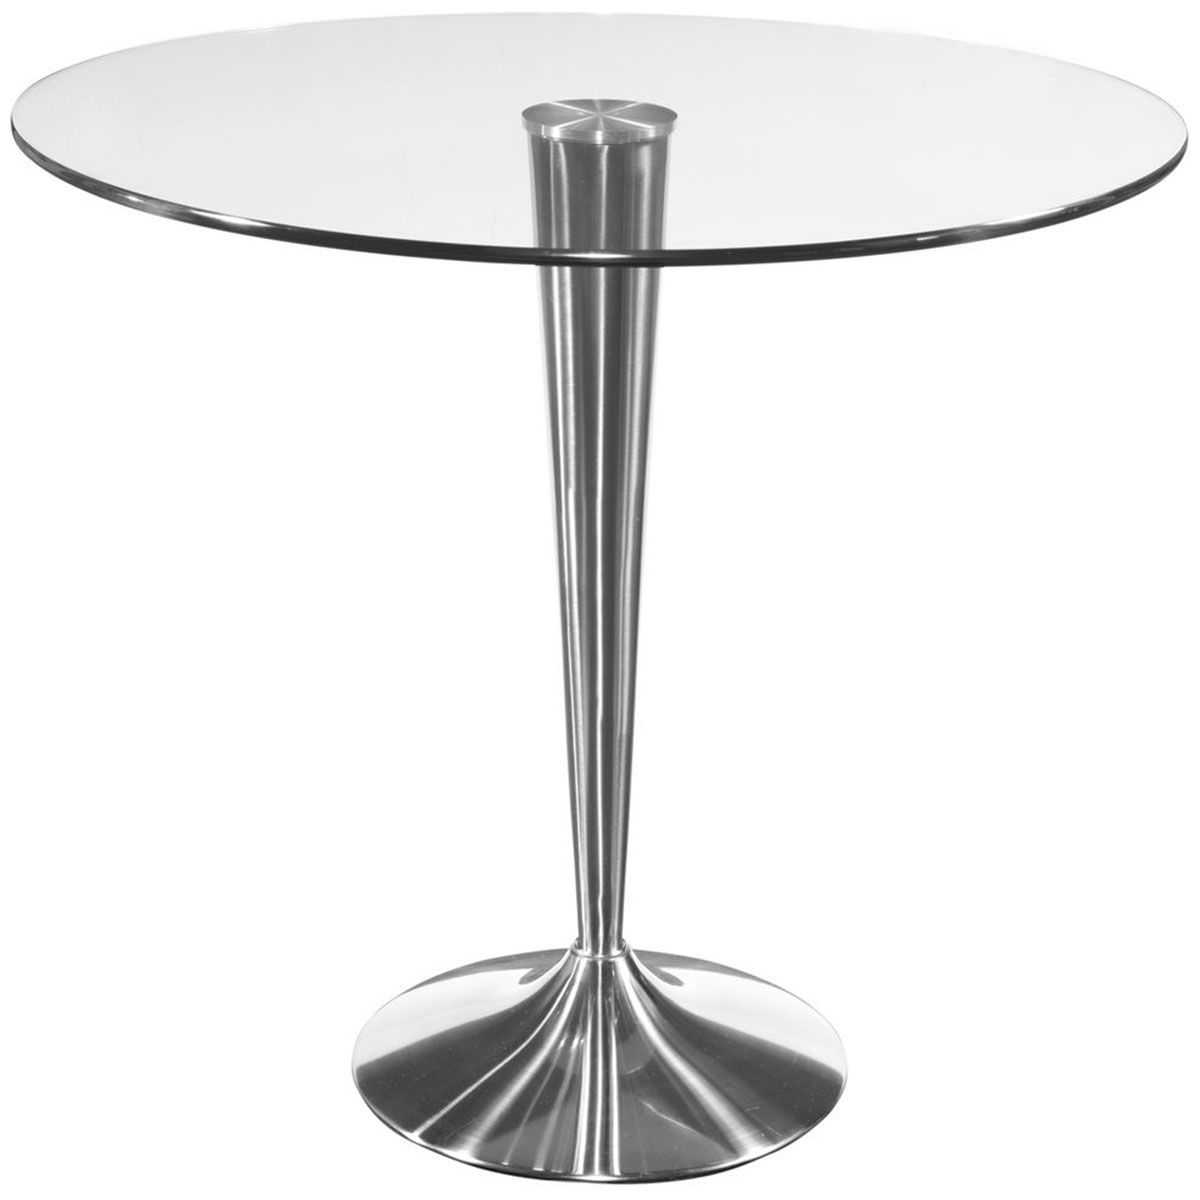 Bassett mirror company carnaby round cocktail leaf new home s - Bassett Mirror Concorde Round End Table T2074 220b Tec